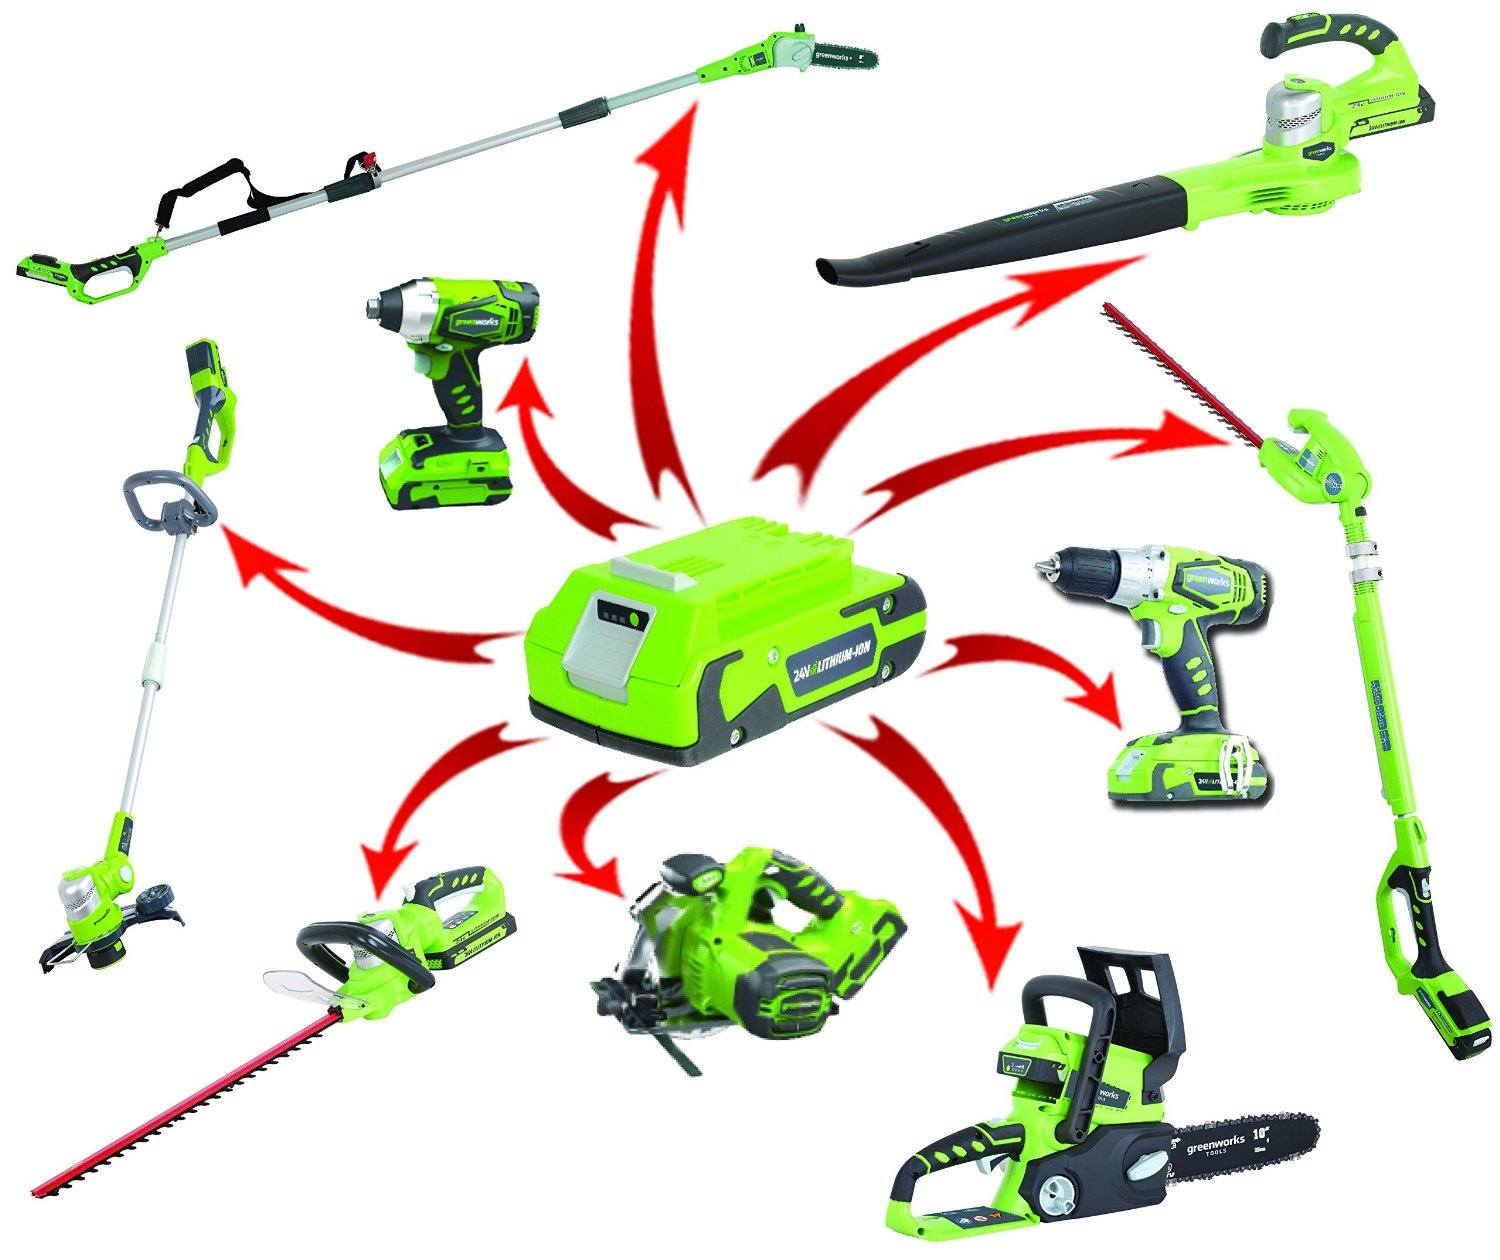 Greenworks tools test du taille haie lectrique t lescopique - Taille haie telescopique ...